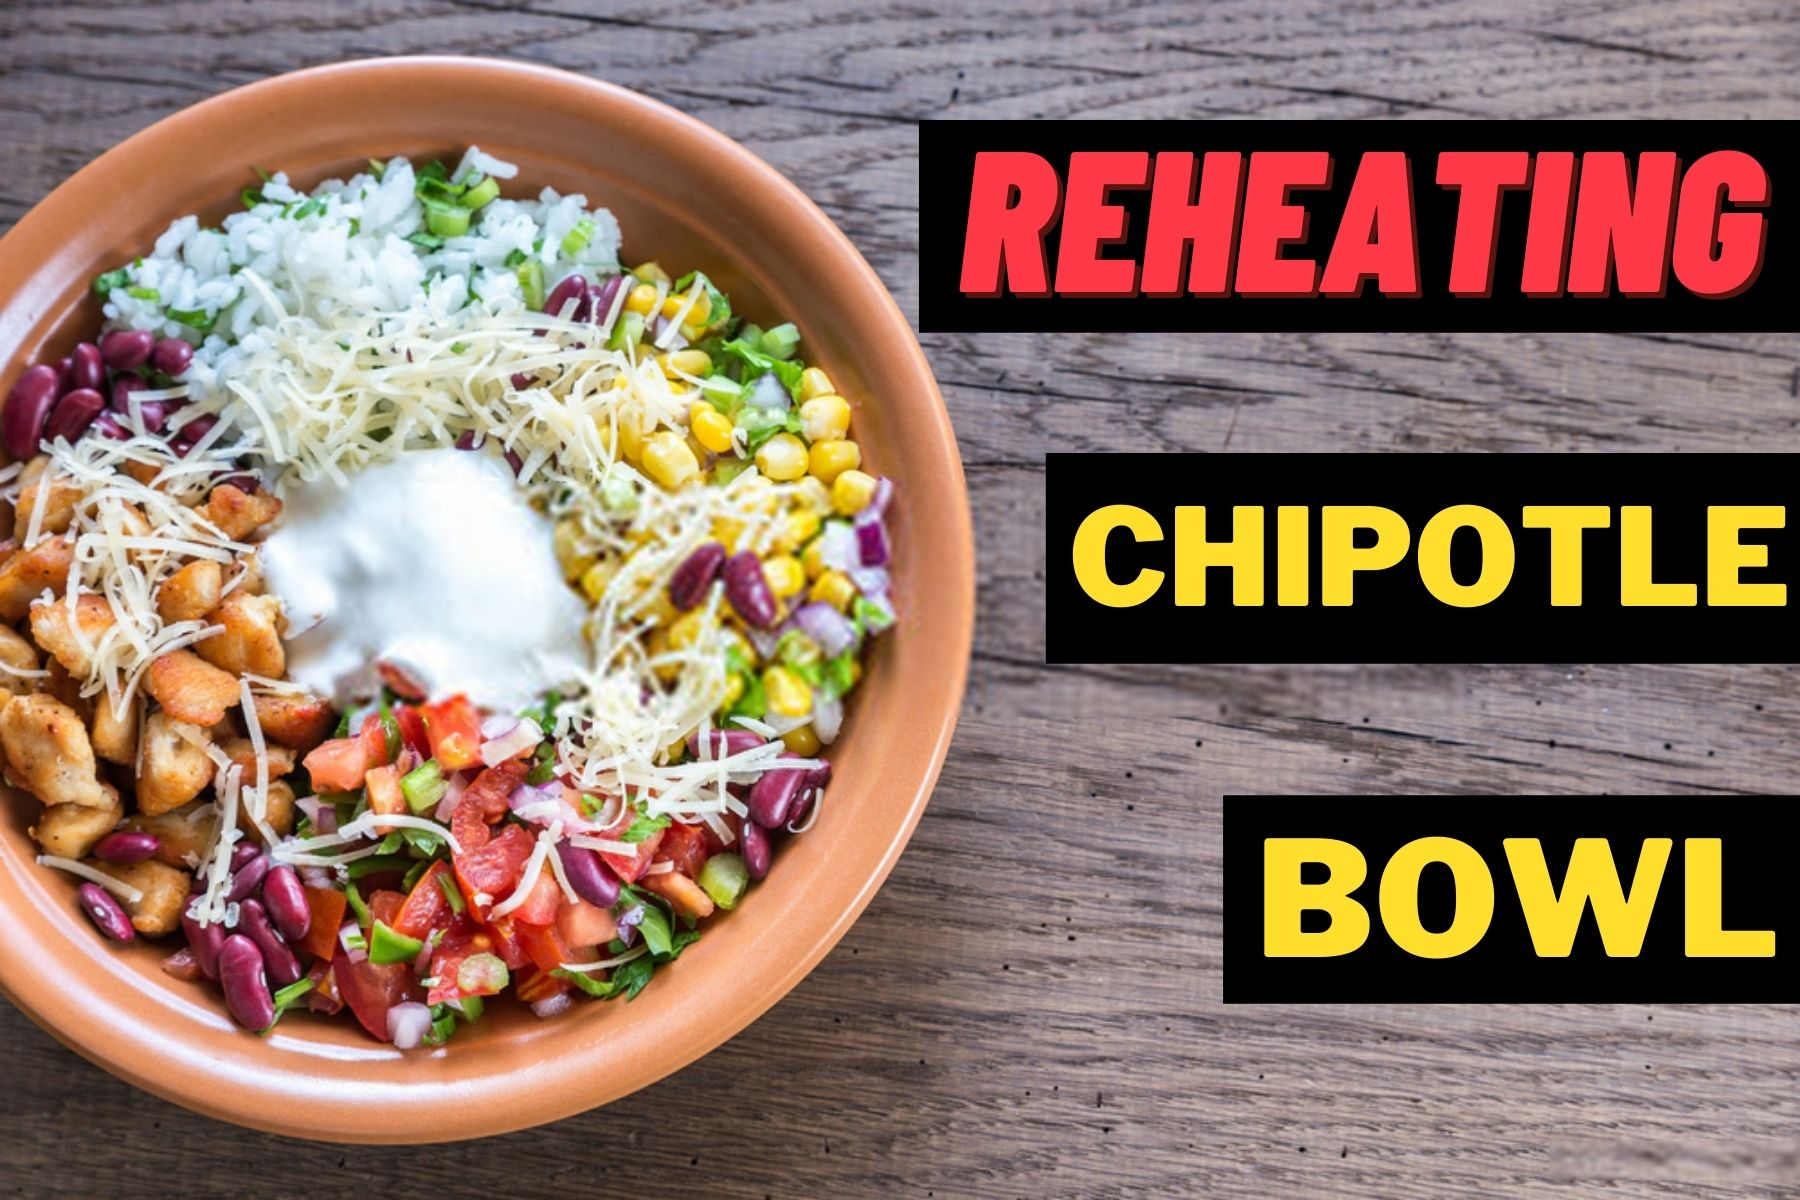 How to reheat chipotle bowl